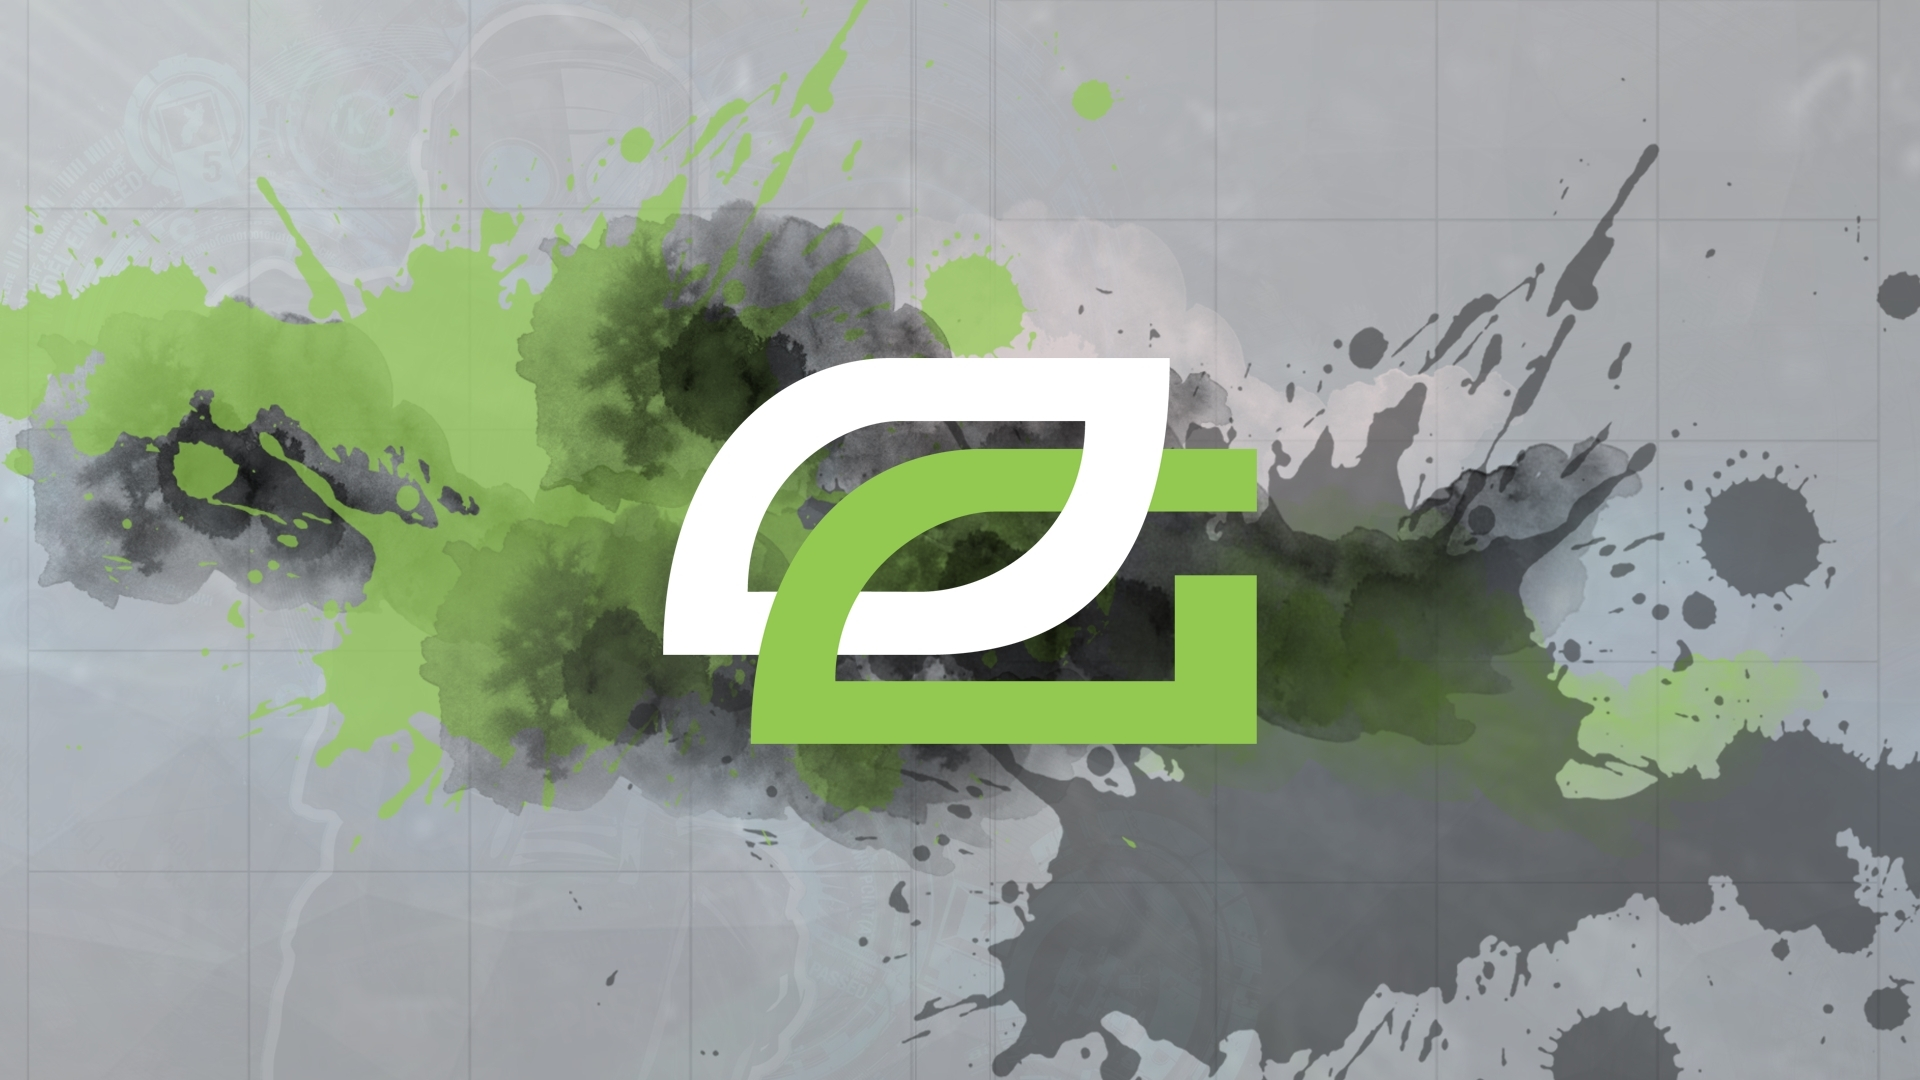 misc] optic gaming wallpapers : opticgaming